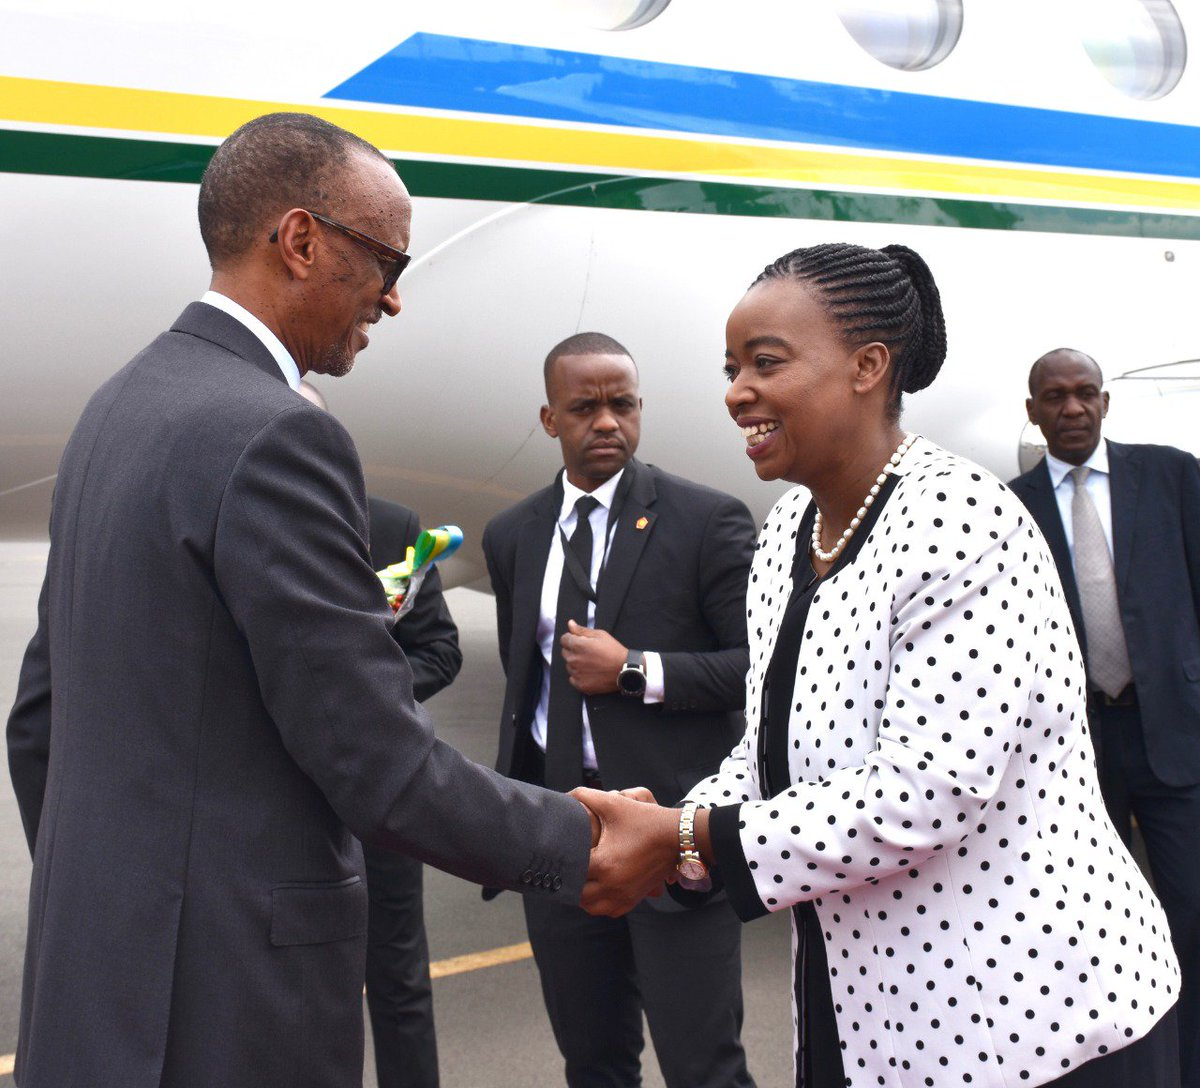 Received H.E. Paul Kagame, President of the Republic of Rwanda, at the JKIA today. President Kagame is Kenya for a one day official visit at the invitation of his host, H.E. President Uhuru Kenyatta.